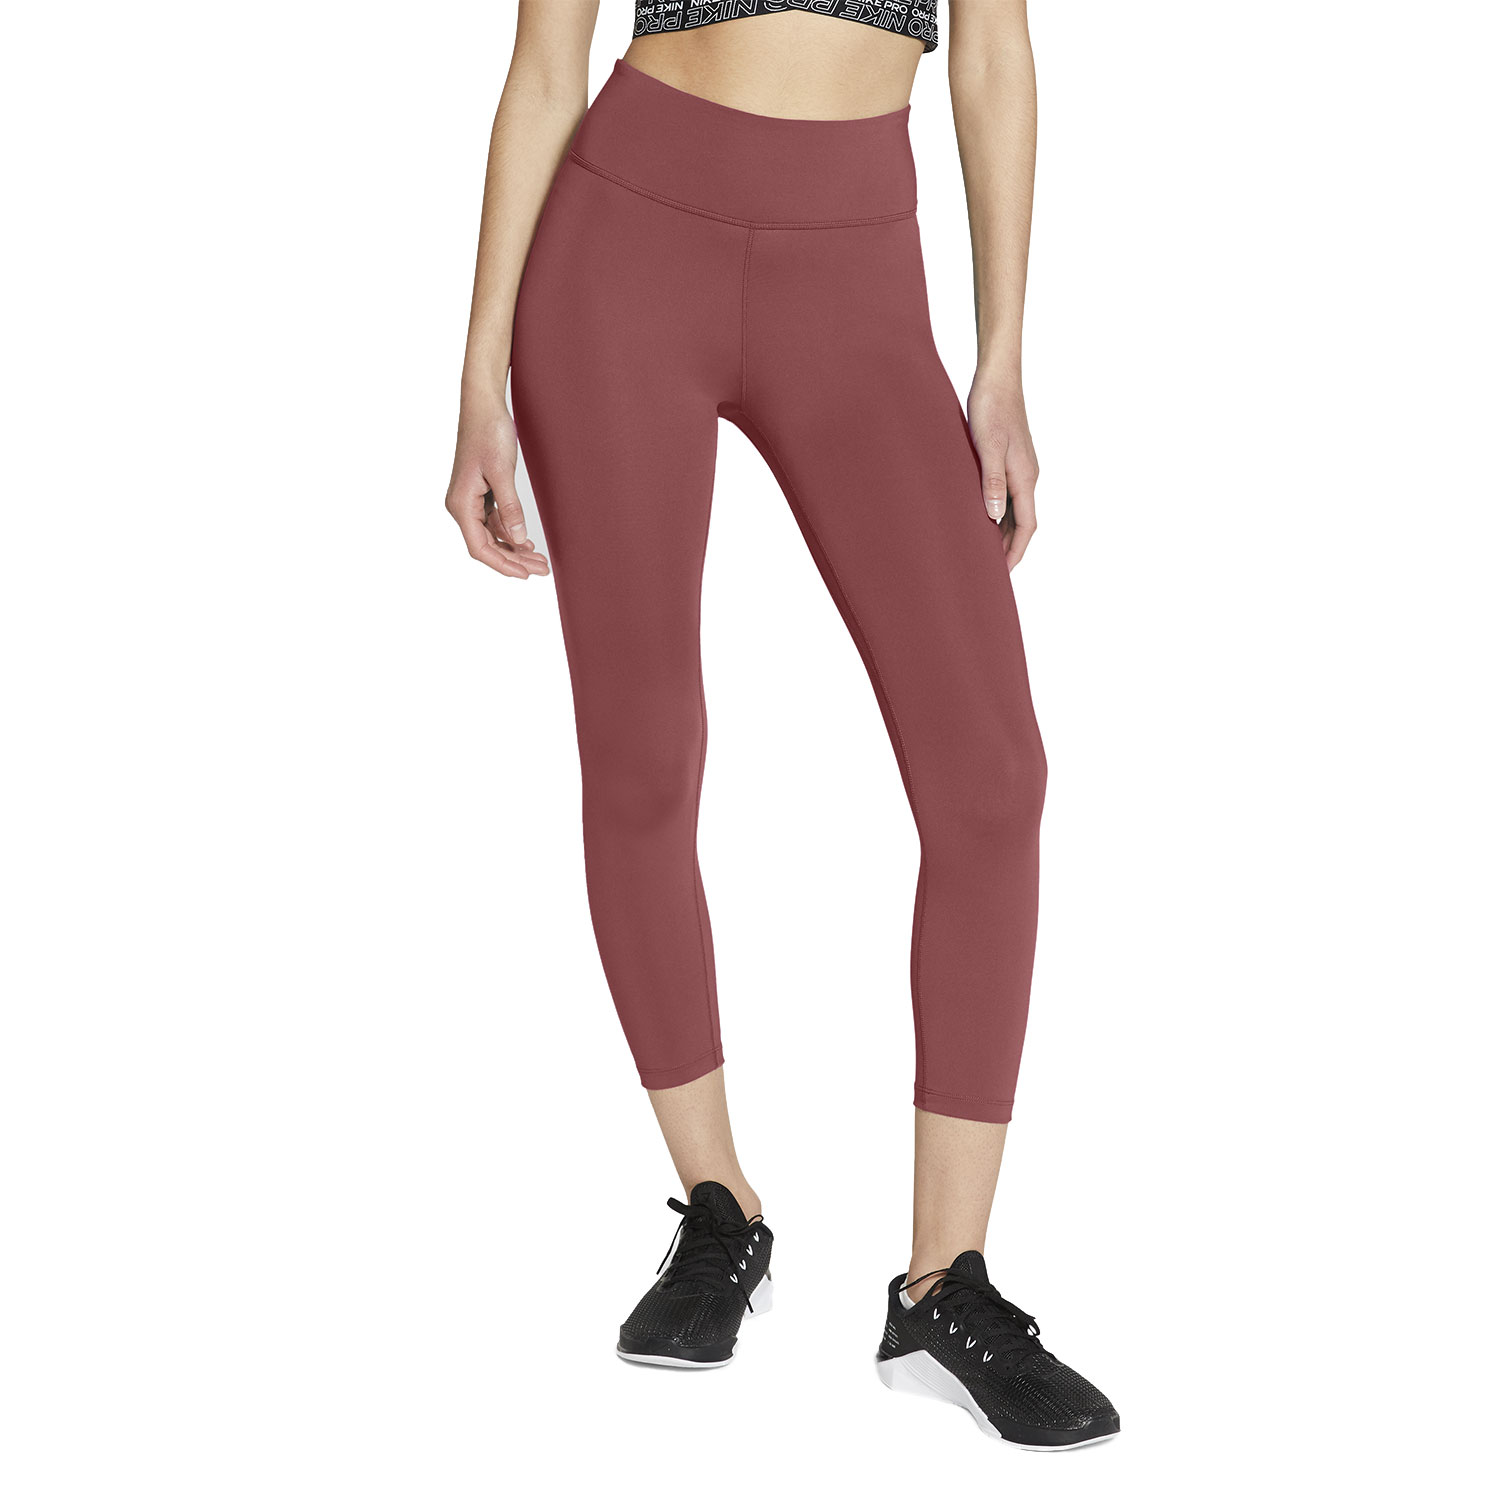 Nike Dri-FIT One Tights - Canyon Rust/White